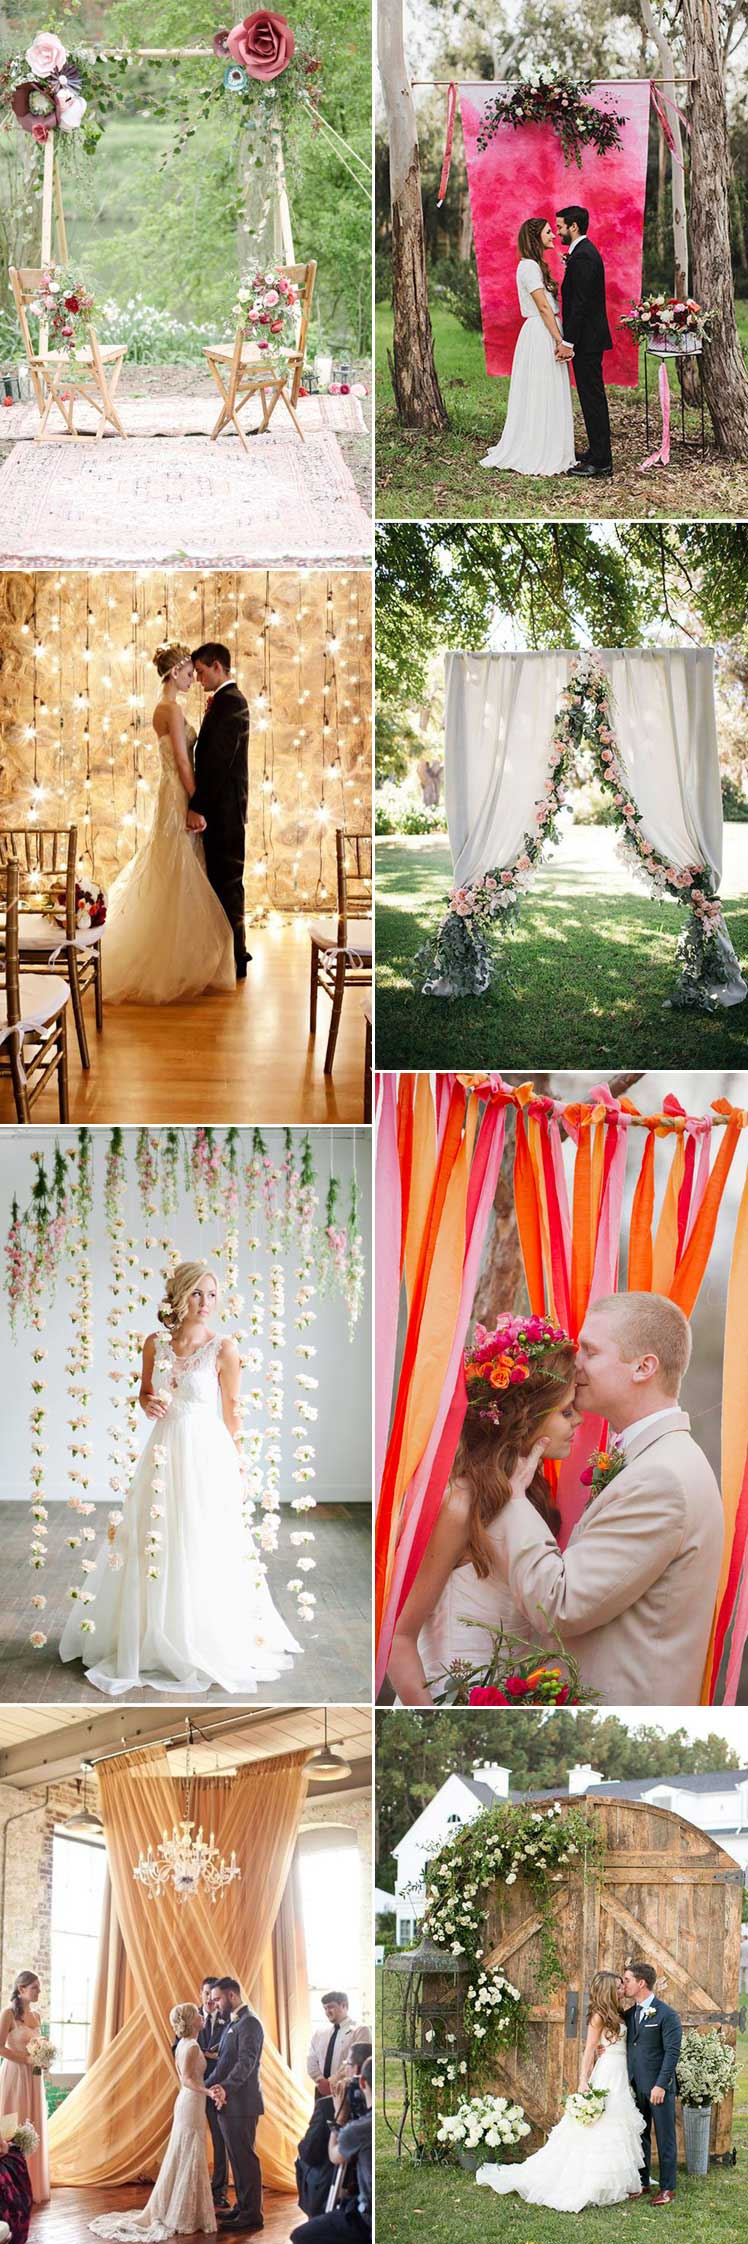 Beautiful wedding backdrop ideas for every style